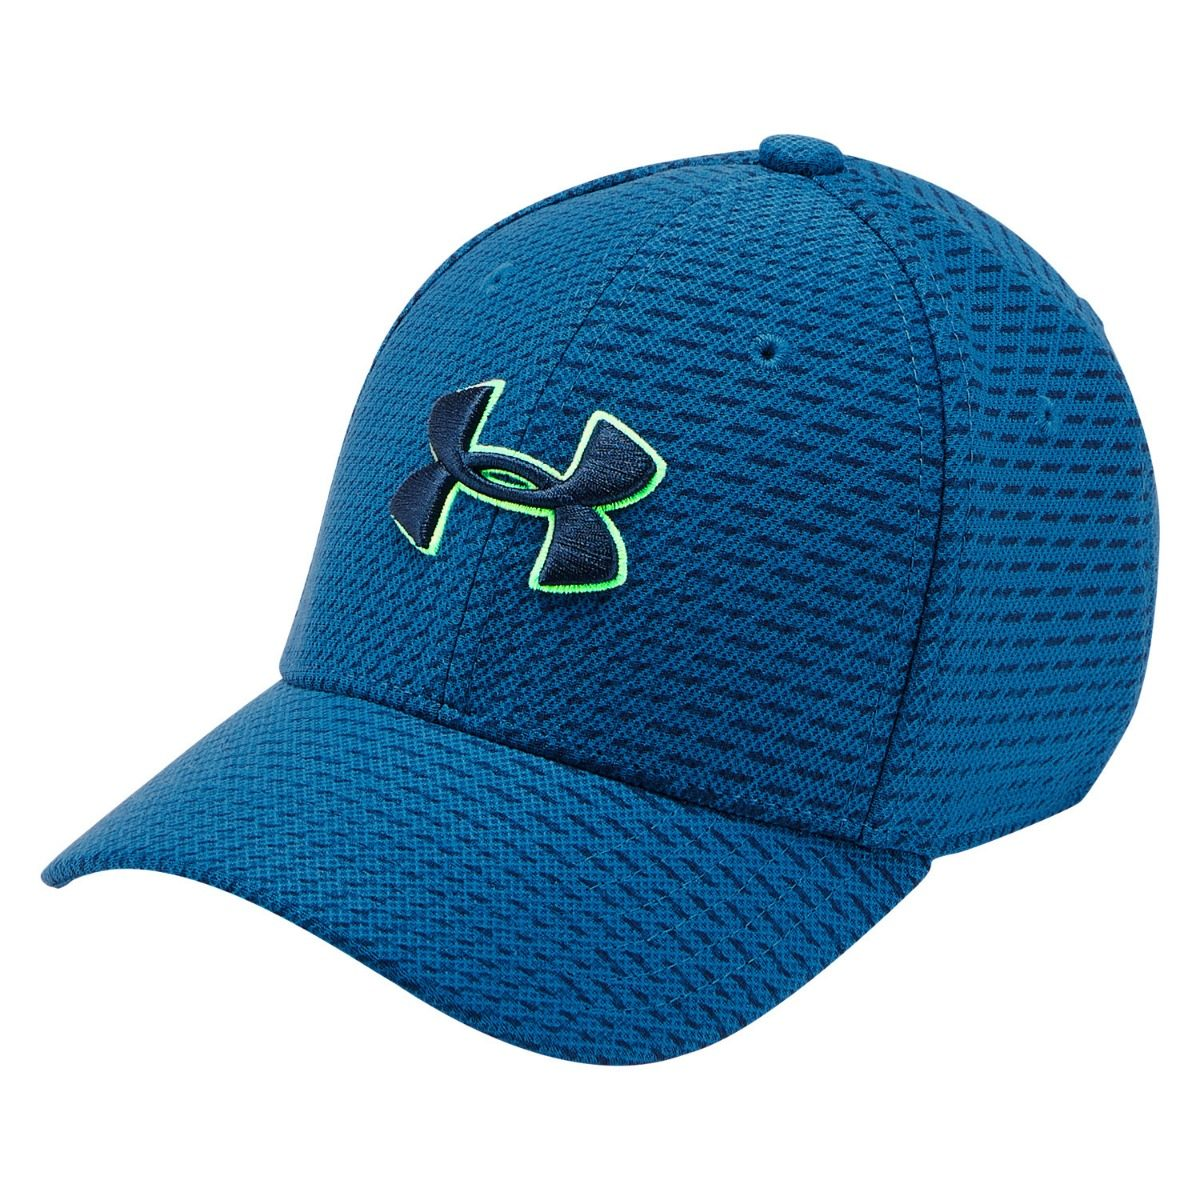 5e54a799bec99 Gorra Under Armour Printed Blitzing 3.0 Jr -   399.00 en Mercado Libre